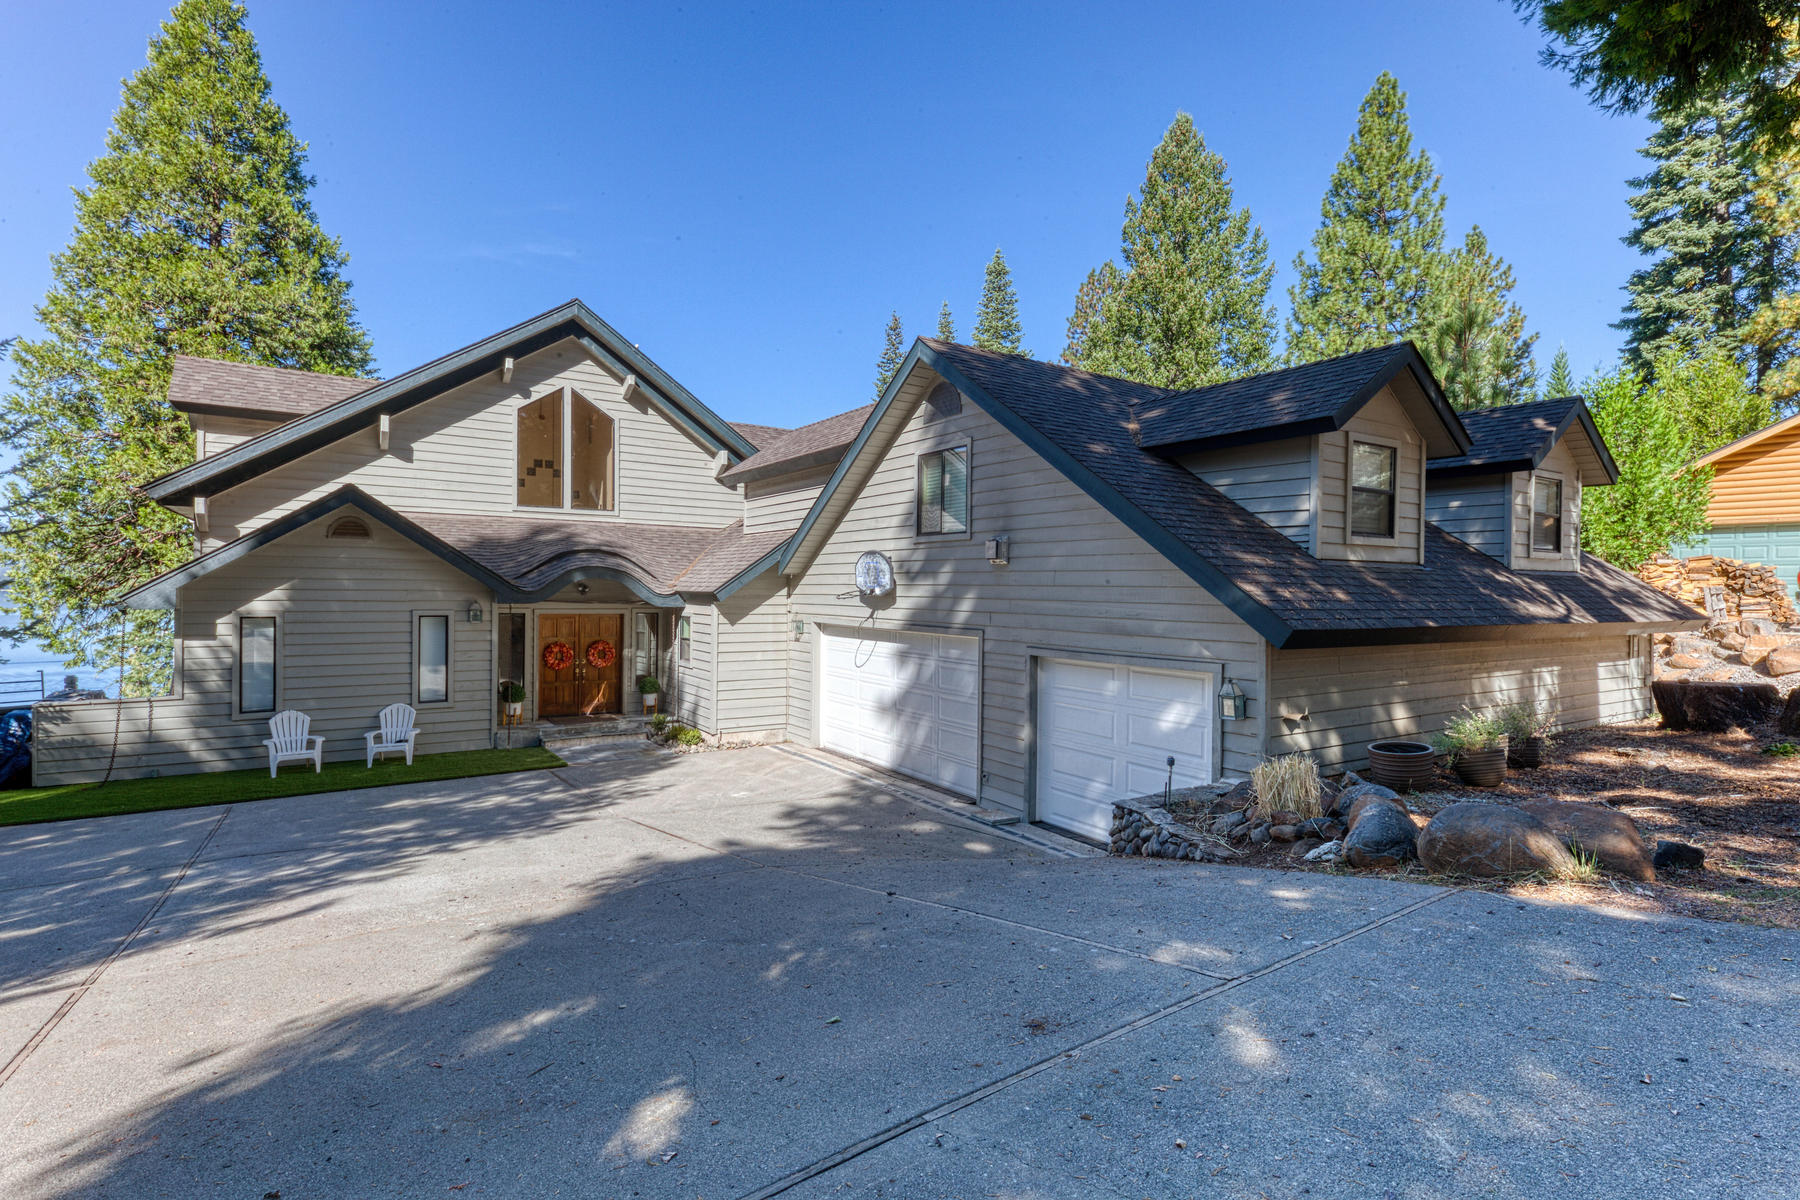 Single Family Homes for Active at 837 Lassen View Dr, Lake Almannor, CA 96137 837 Lassen View Dr. Lake Almanor, California 96137 United States